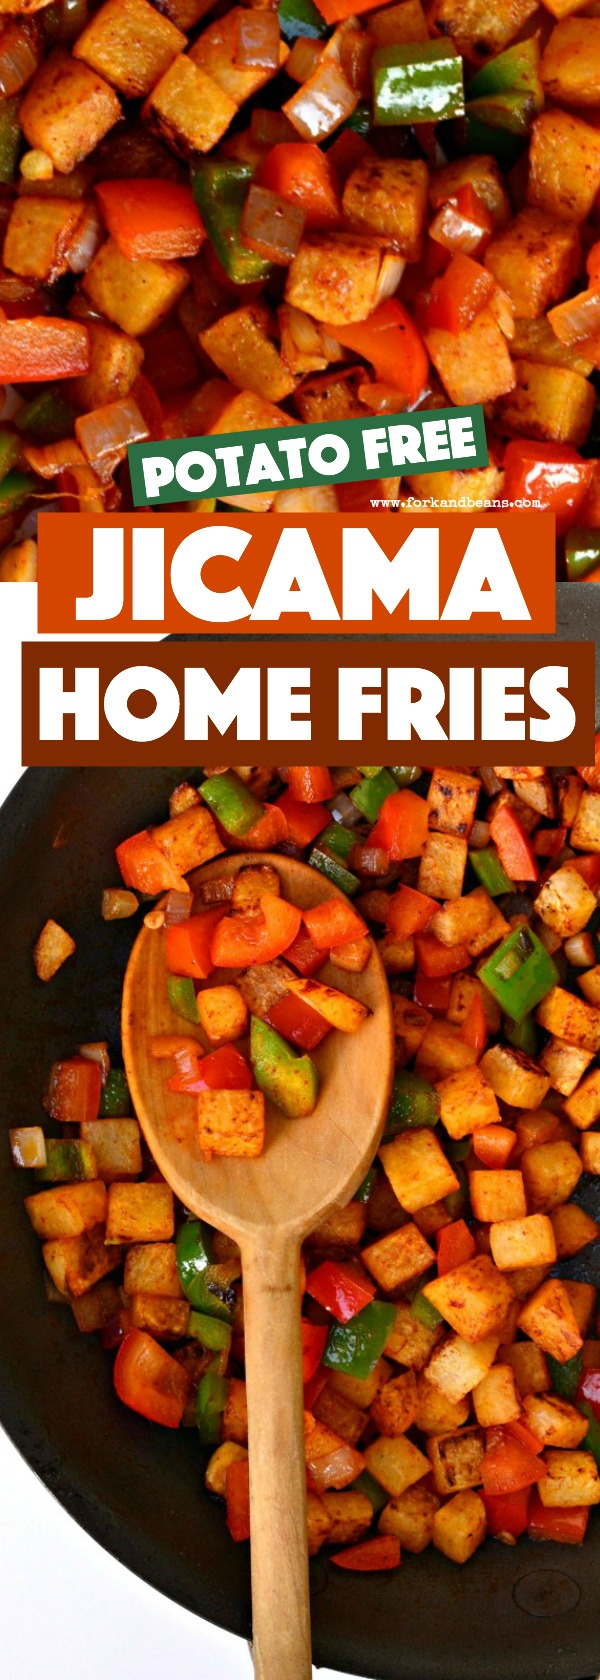 Jicama Home Fries are the perfect no potato option when you are looking for a nightshade-free breakfast.